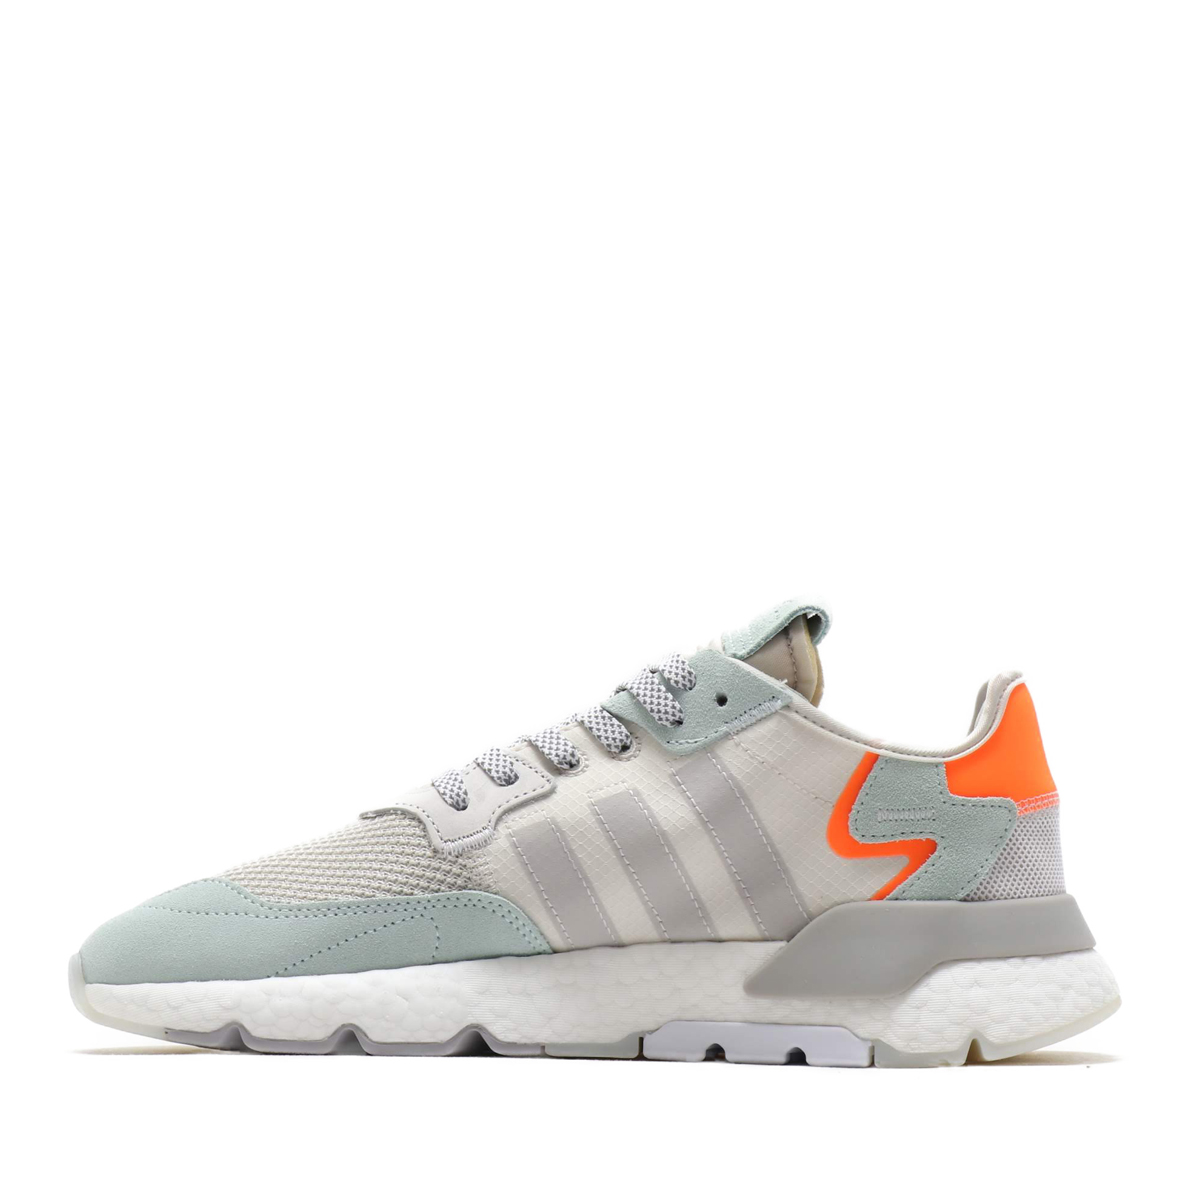 adidas Originals NITE JOGGER (Adidas originals knight jogger) RAW WHITEGREY ONE F17VAPOUR GREEN 19SS S